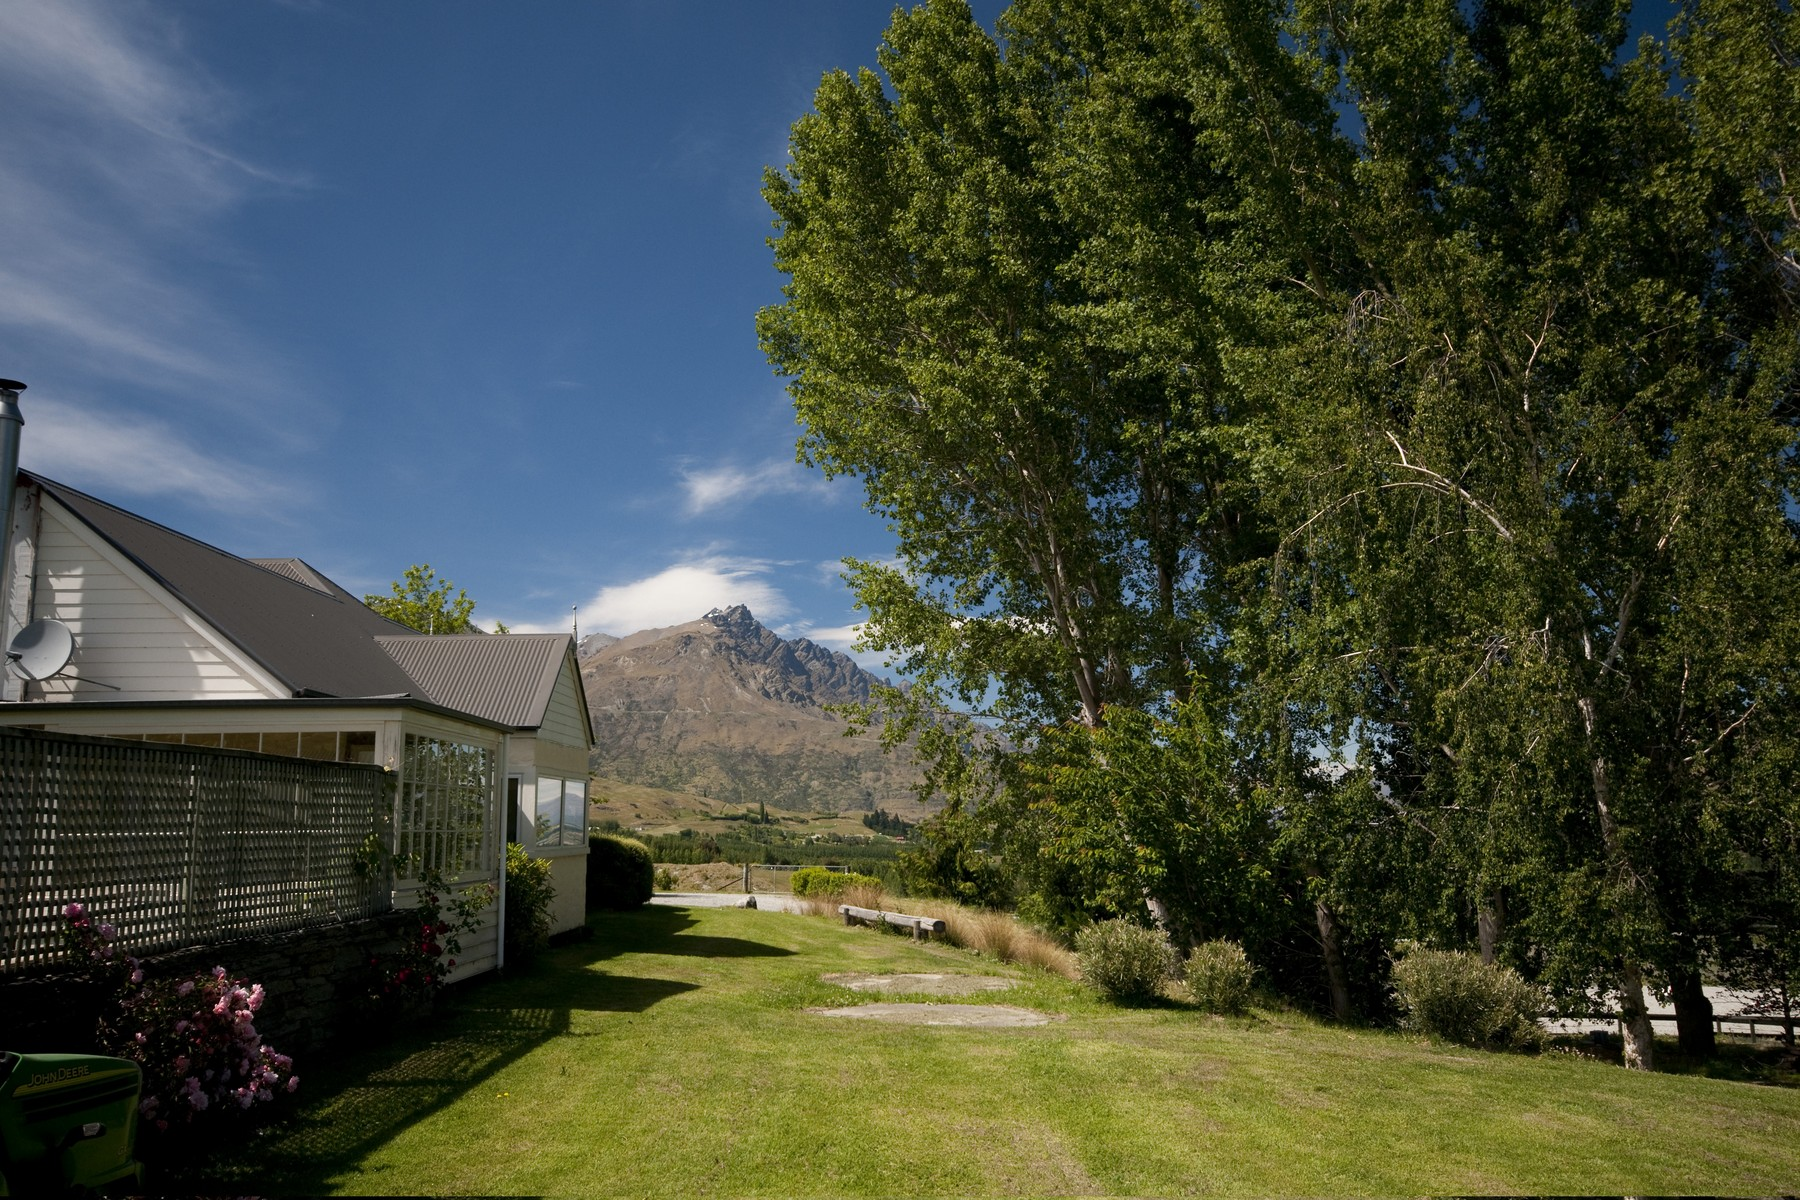 Tek Ailelik Ev için Satış at Speargrass Farm, 125 Hunter Road 125 Hunter Road Speargrass Flat Queenstown, Southern Lakes (Güney Gölleri), 9371 Yeni Zelanda